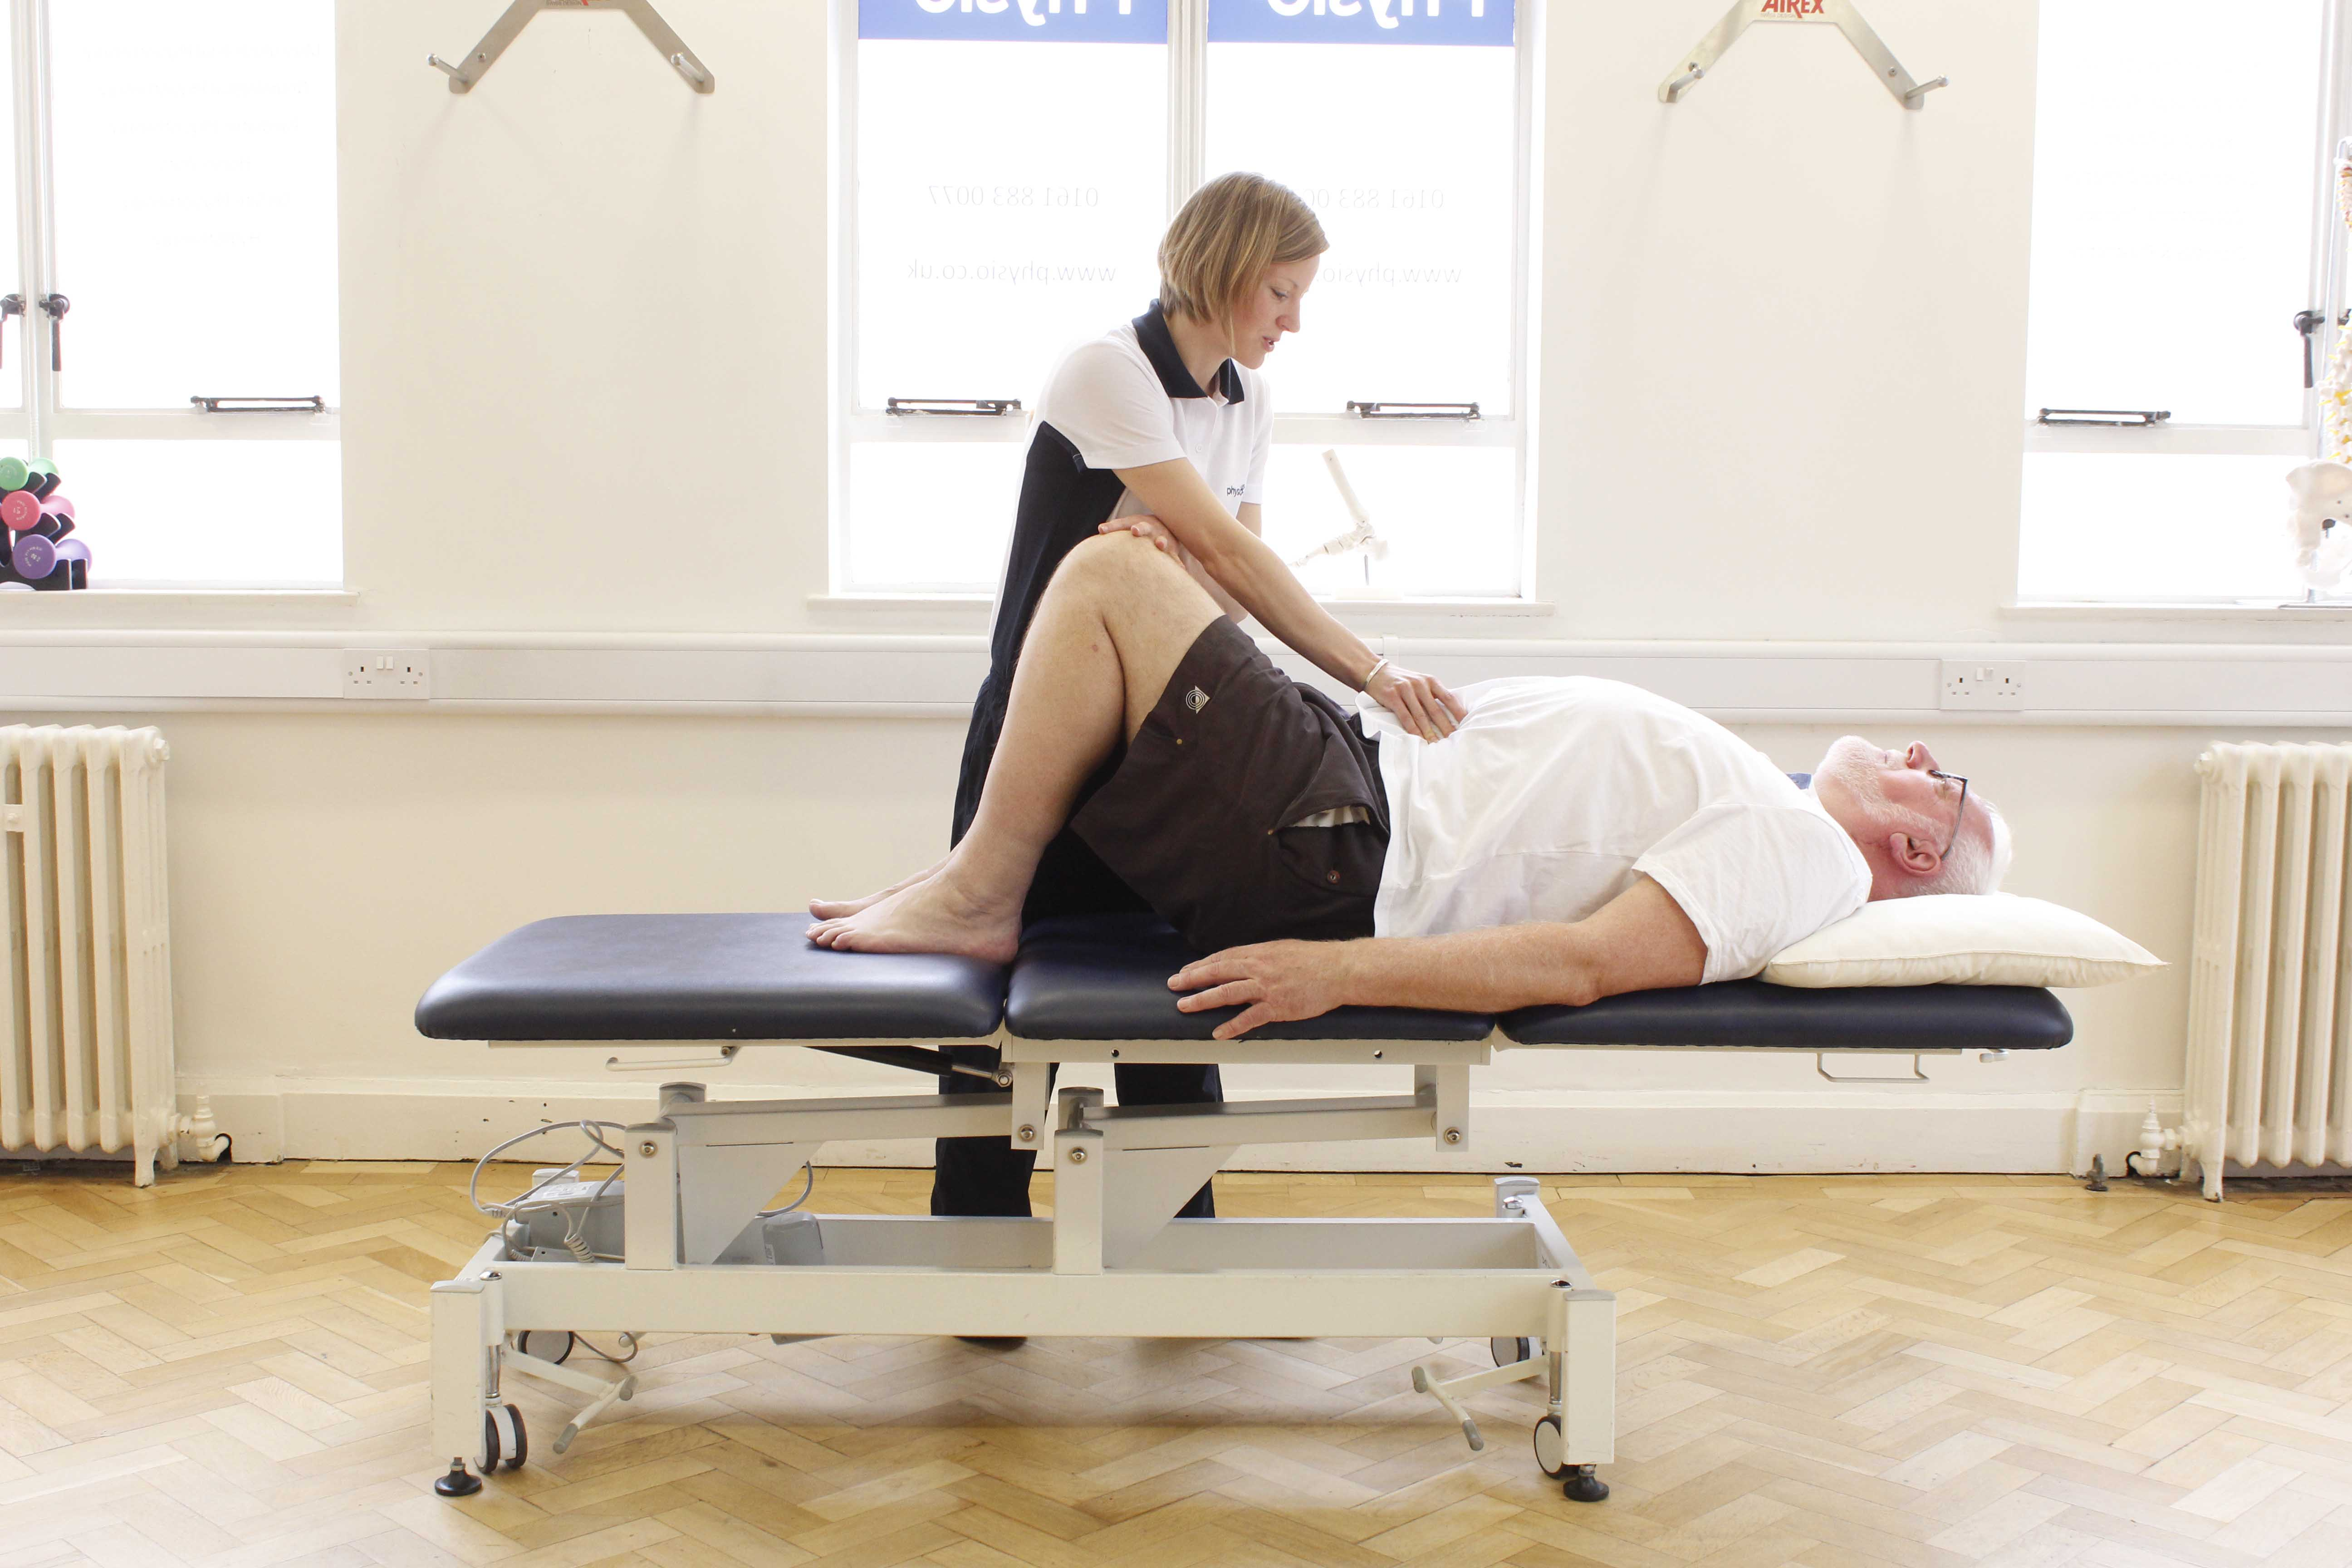 Pelvic floor and abdominal exercises supervised by a specialist physiotherapist